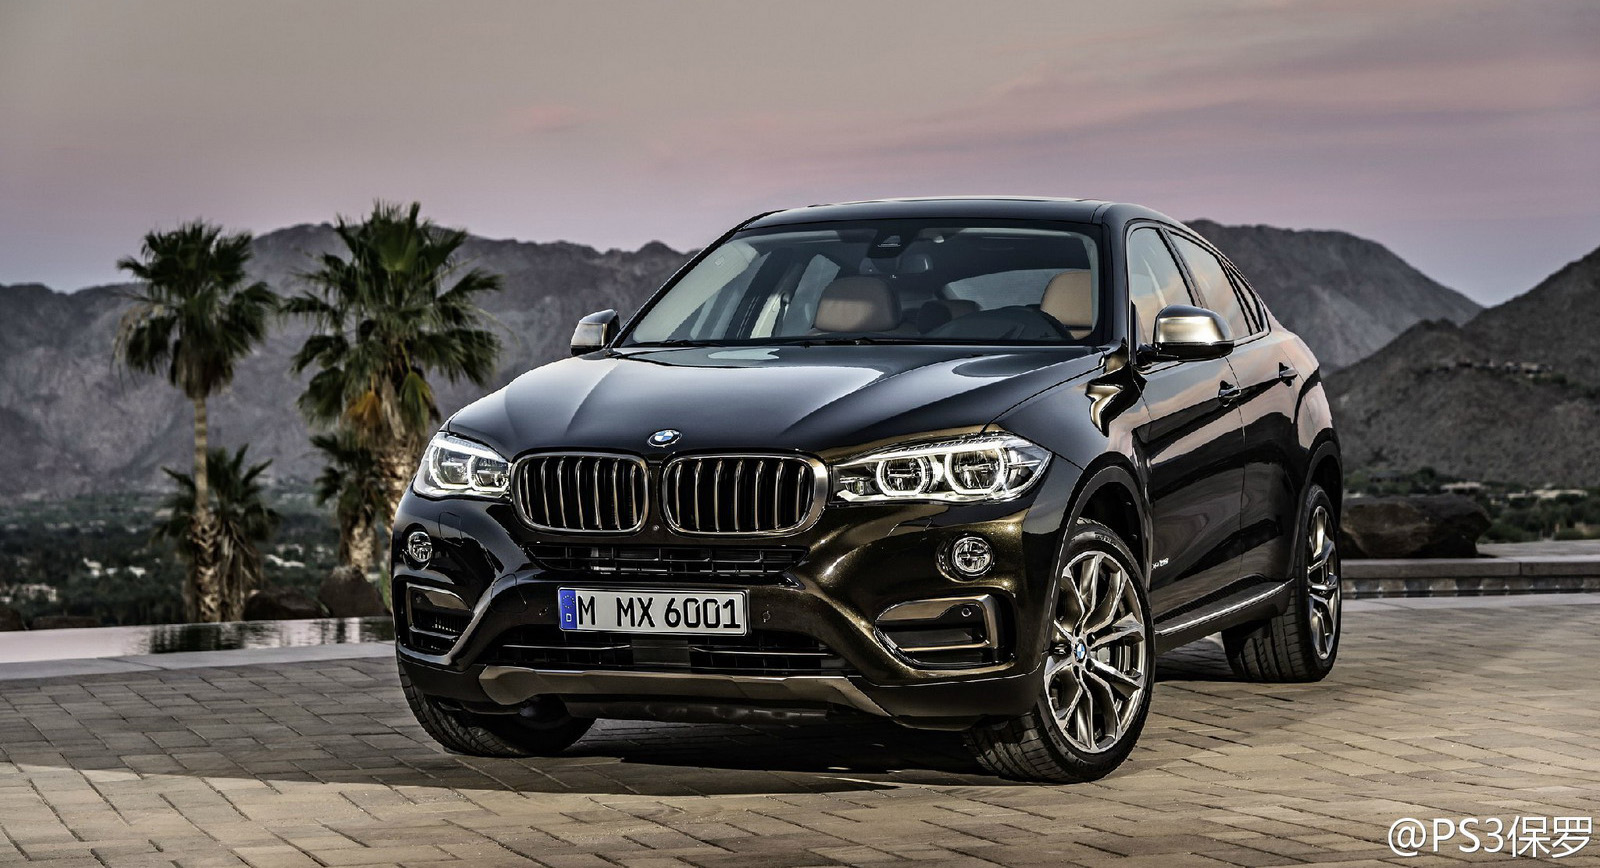 2015 BMW X6 Photos Of Second Generation SUV Leaked